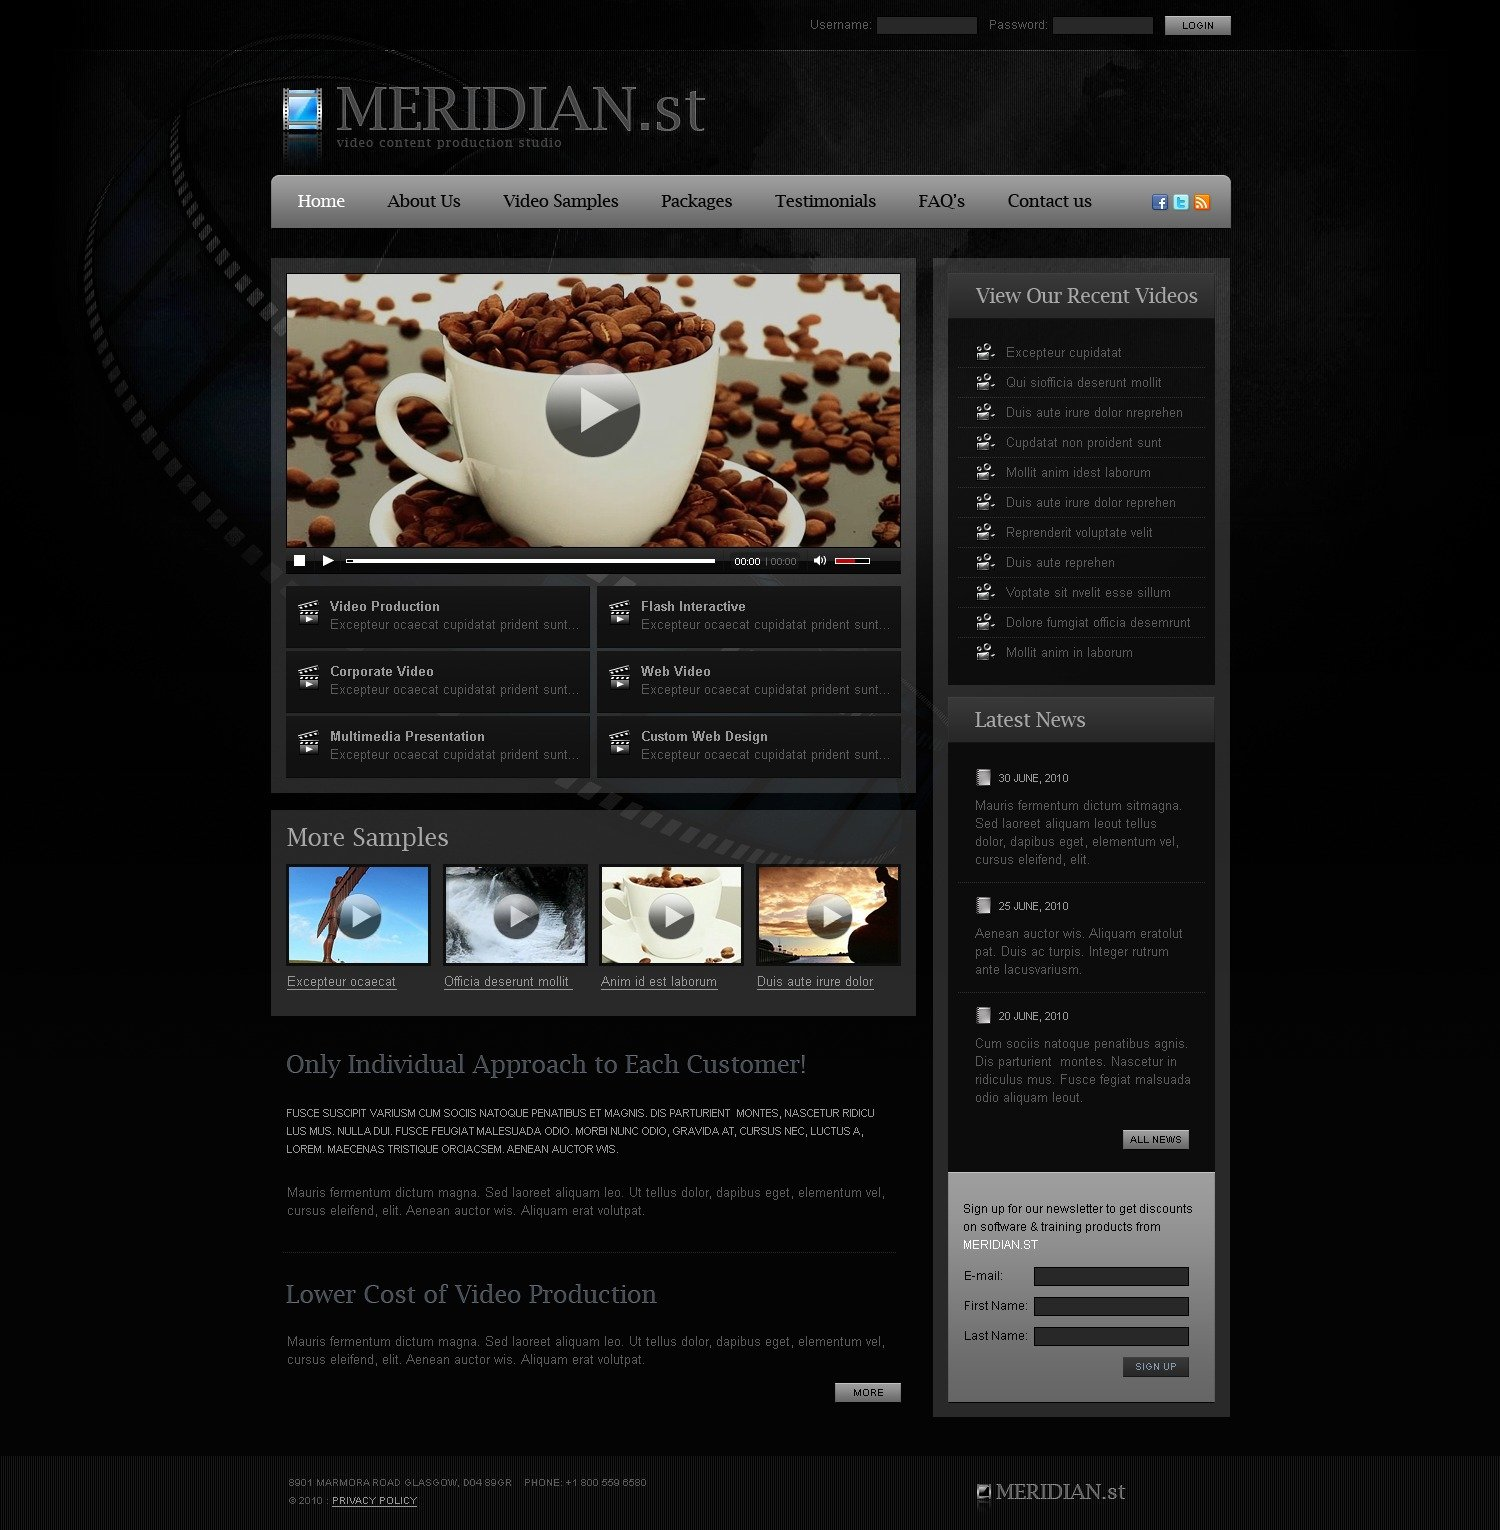 The Meridian St PSD Design 54304, one of the best PSD templates of its kind (media, most popular, flash 8, wide, black), also known as meridian st PSD template, video PSD template, content PSD template, production company PSD template, multimedia PSD template, animation PSD template, web photo PSD template, photos PSD template, photography PSD template, music PSD template, sound PSD template, sounds PSD template, mp3 PSD template, avi PSD template, mp4 and related with meridian st, video, content, production company, multimedia, animation, web photo, photos, photography, music, sound, sounds, mp3, avi, mp4, etc.